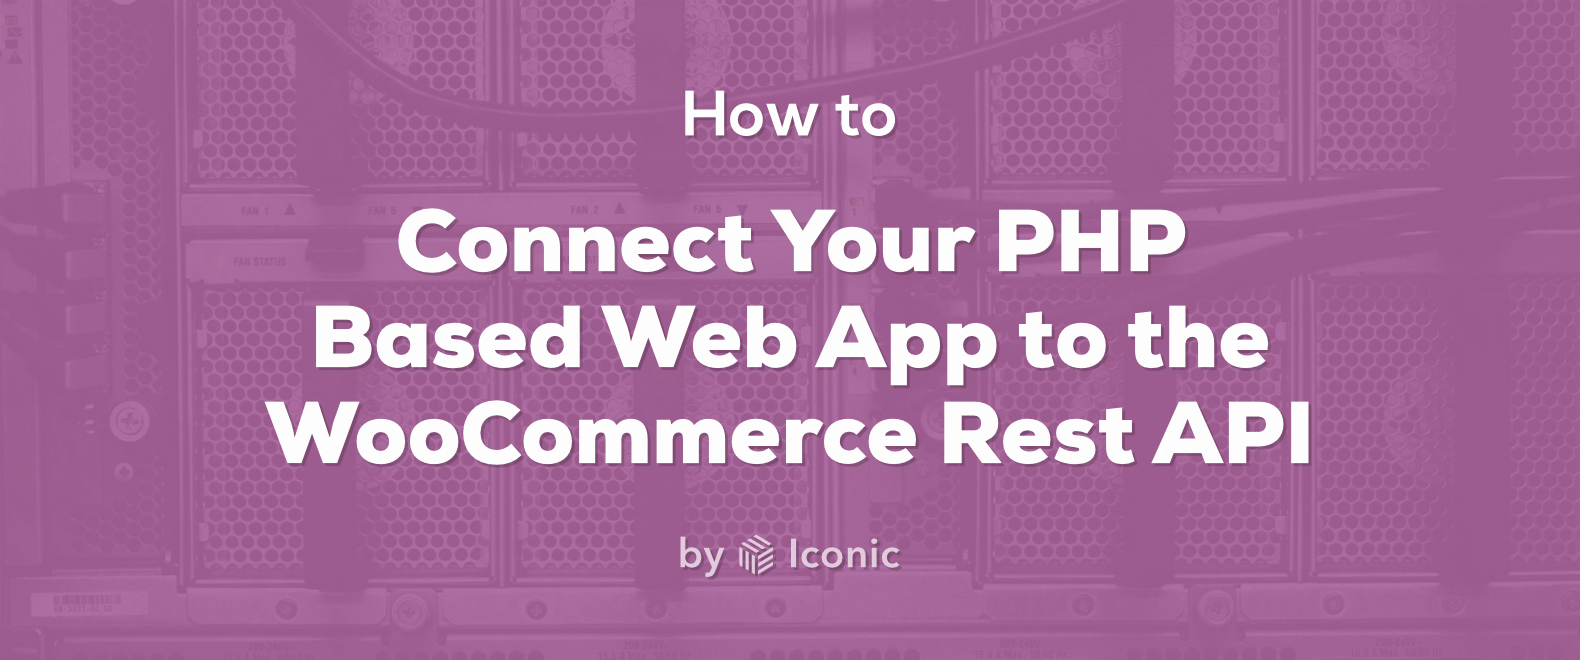 How to Use the WooCommerce API with PHP - Iconic